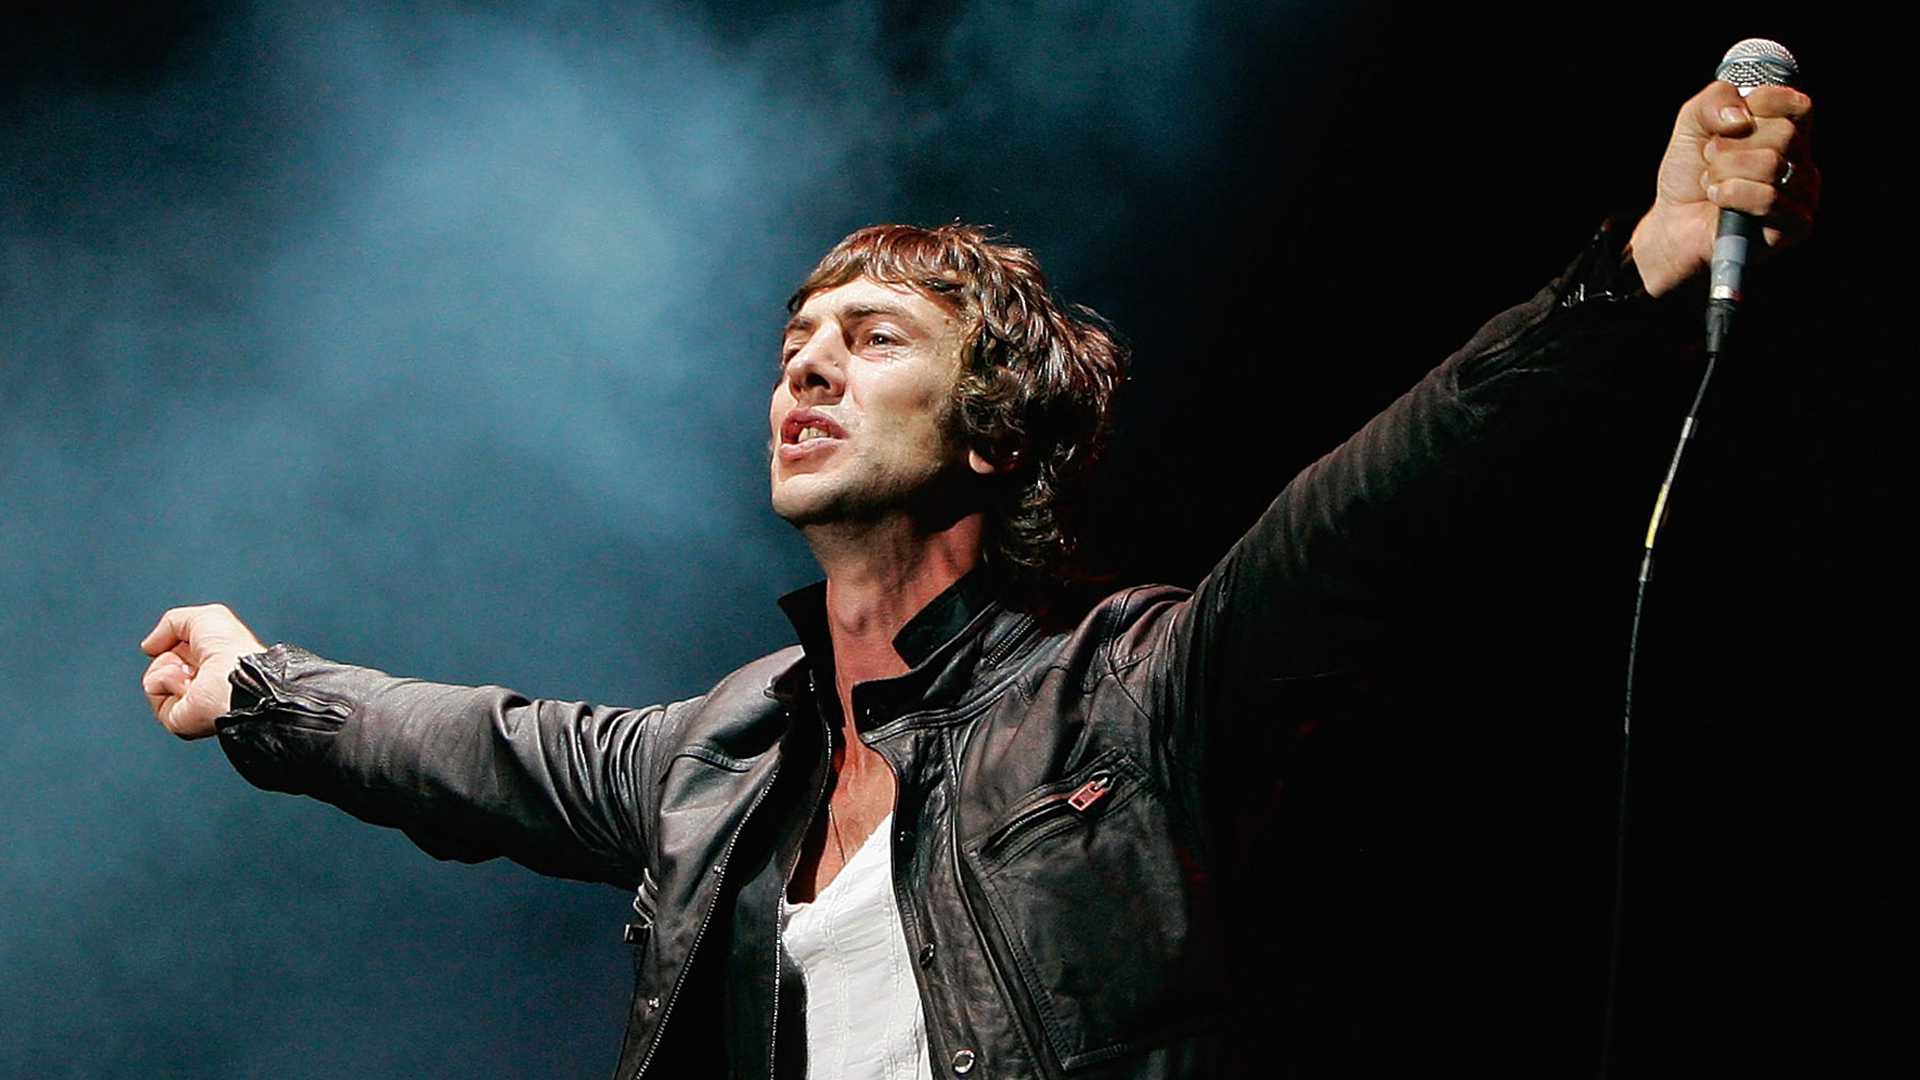 _richard-ashcroft_0